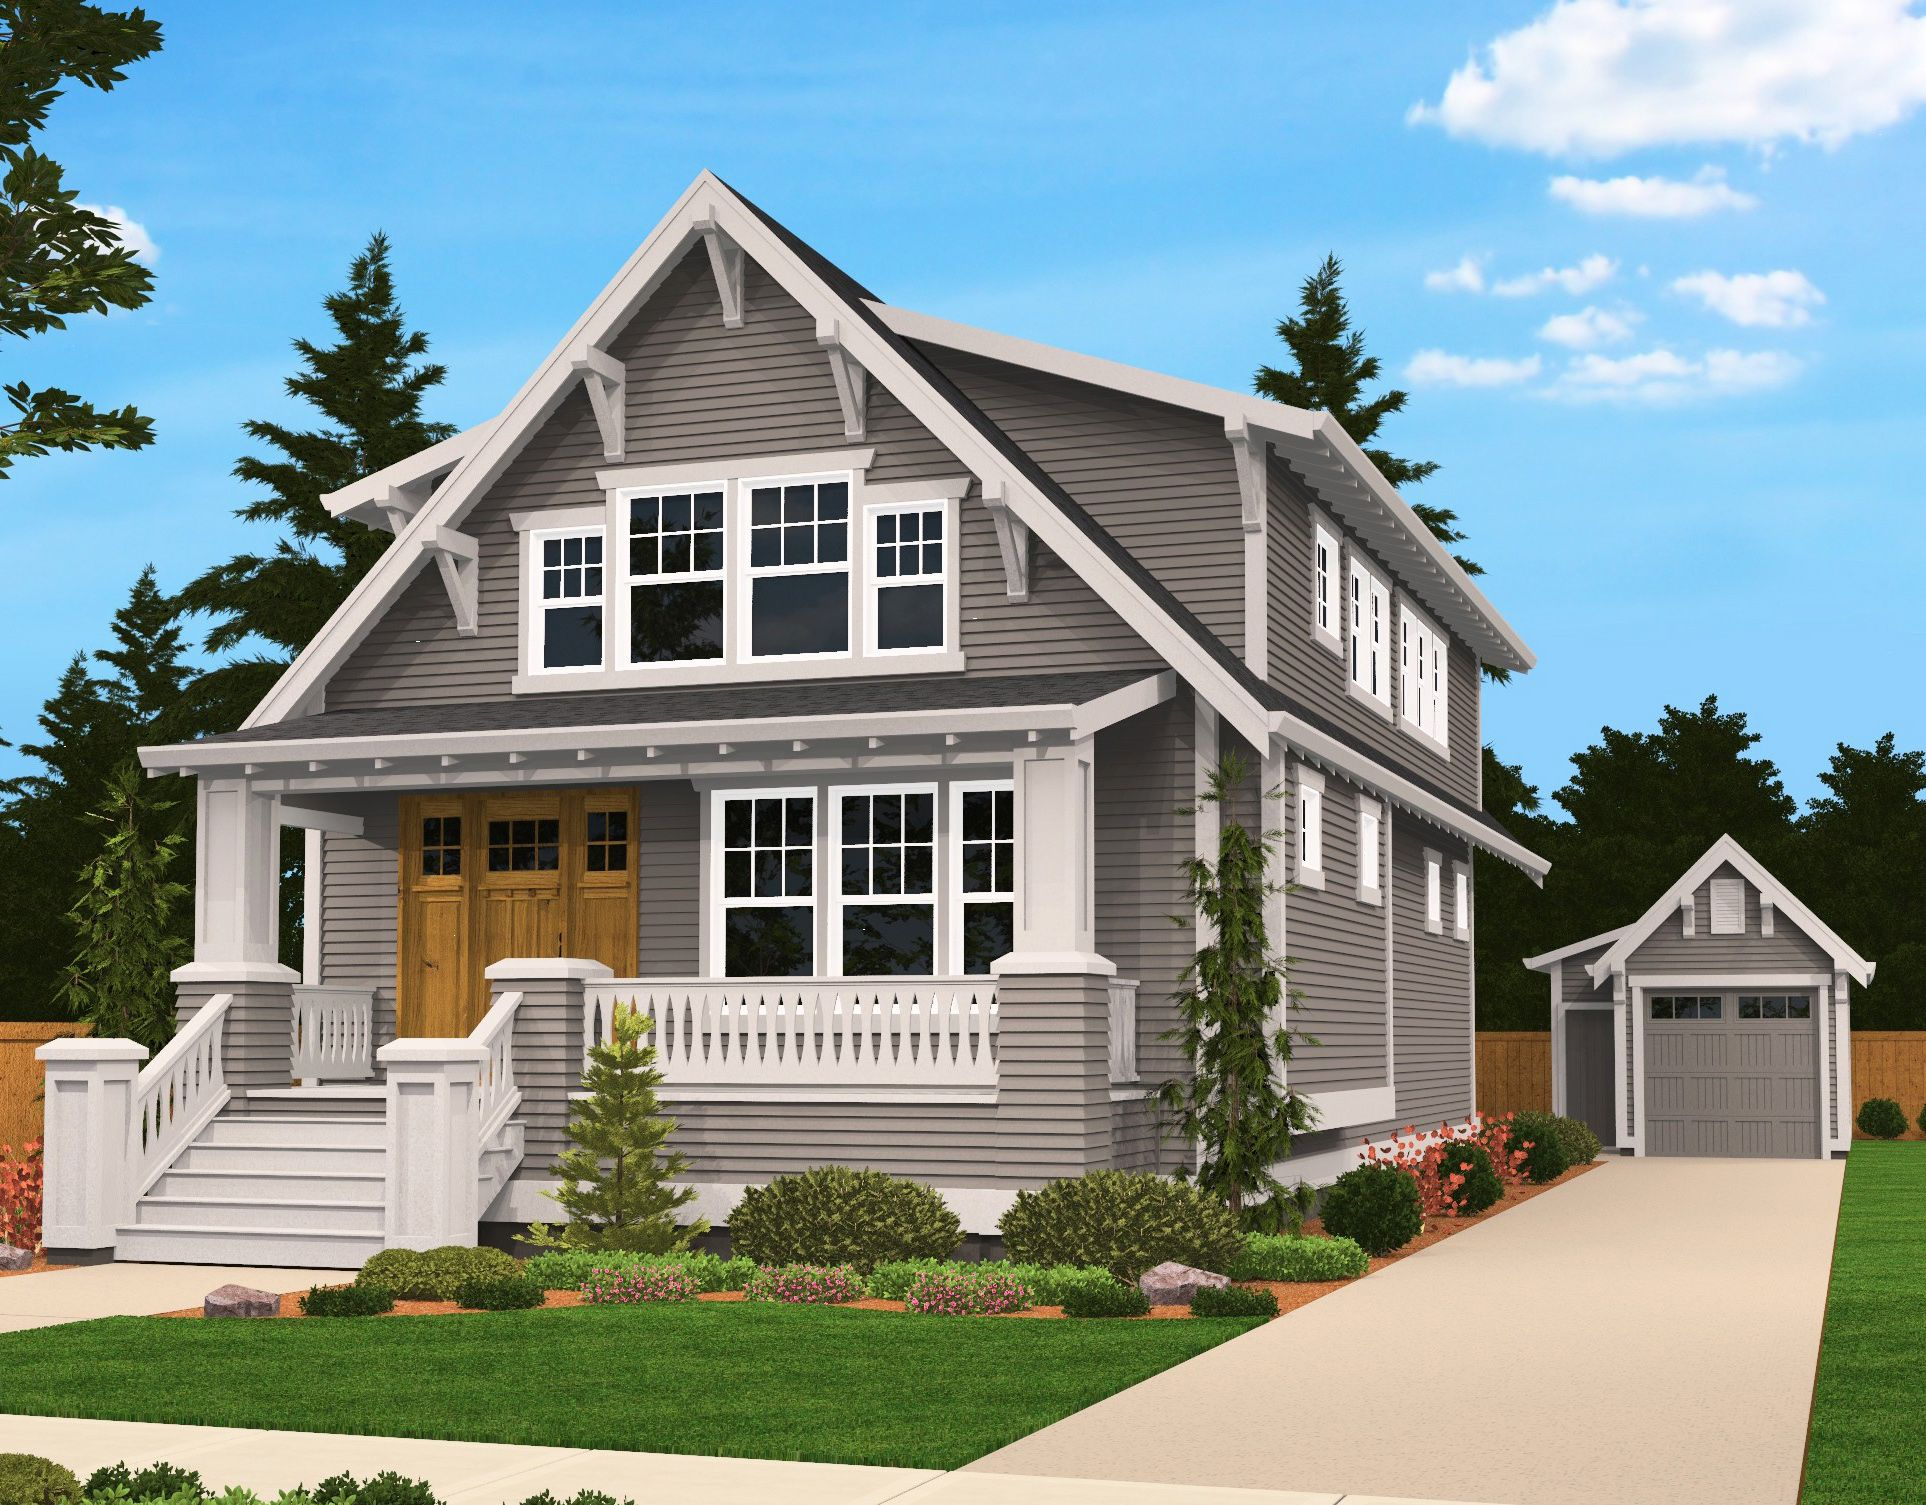 Plan 85058ms handsome bungalow house plan bungalow Bungalow cabin plans